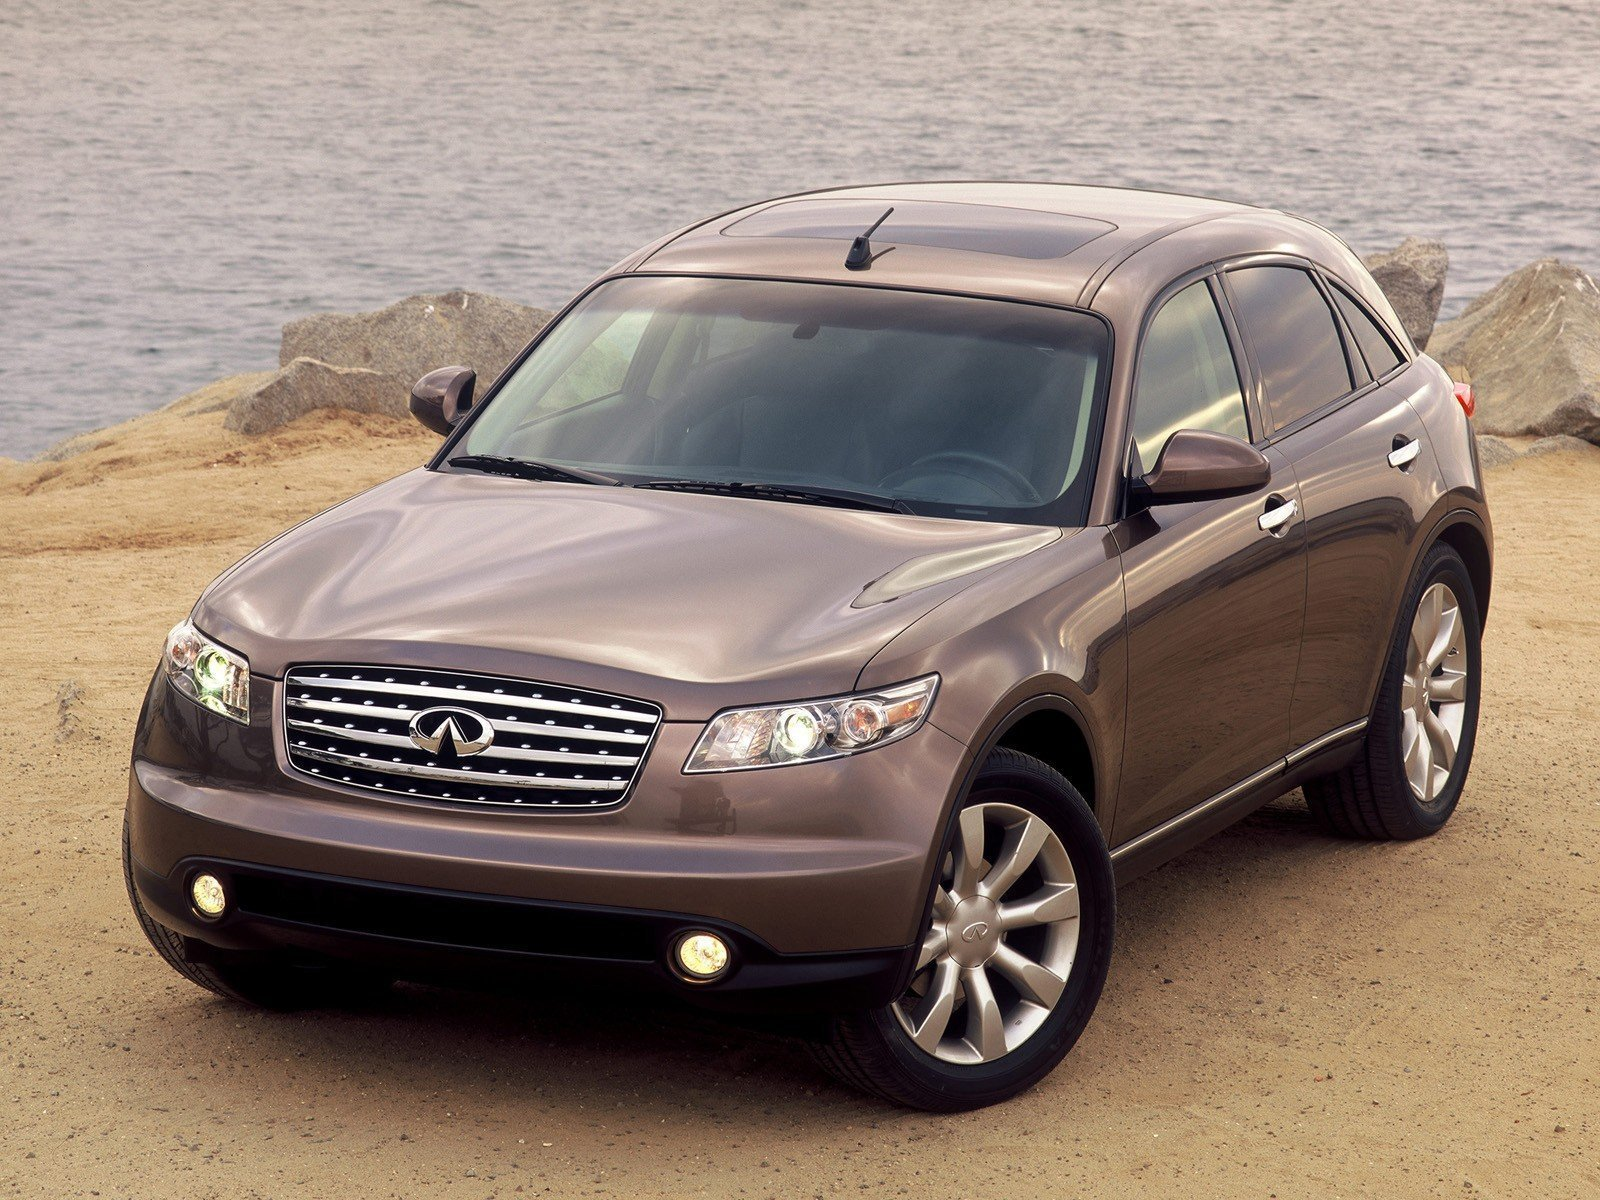 2003 Infiniti FX45 Review - Top Speed